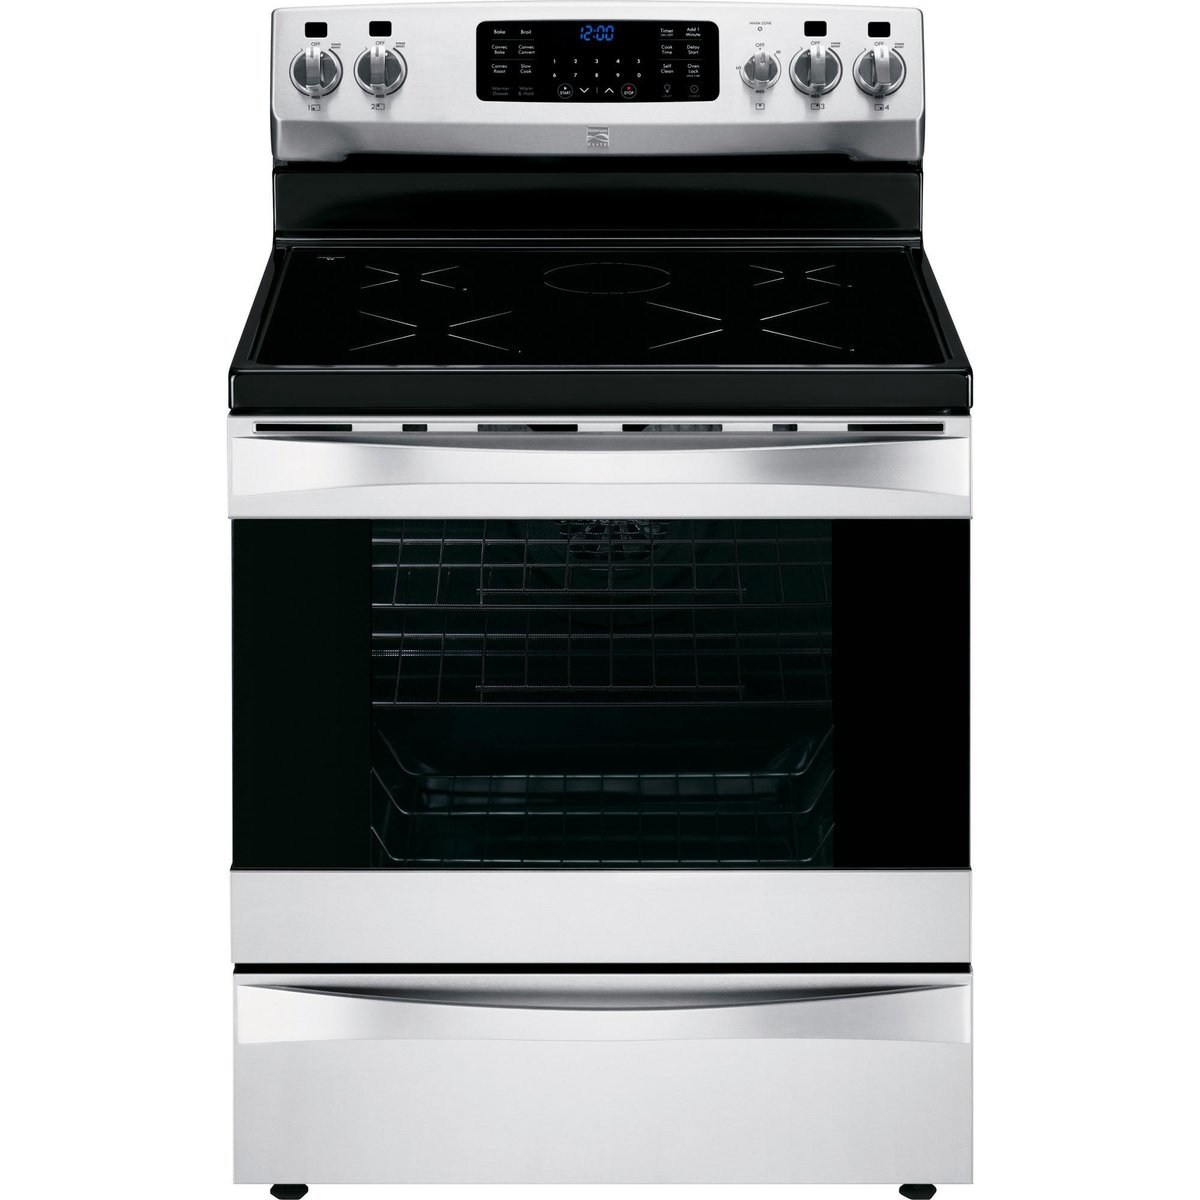 Kenmore Elite 95073 6.1 cu. ft. Self Clean Induction Range in Stainless Steel, includes delivery and hookup (Available in select cities only)